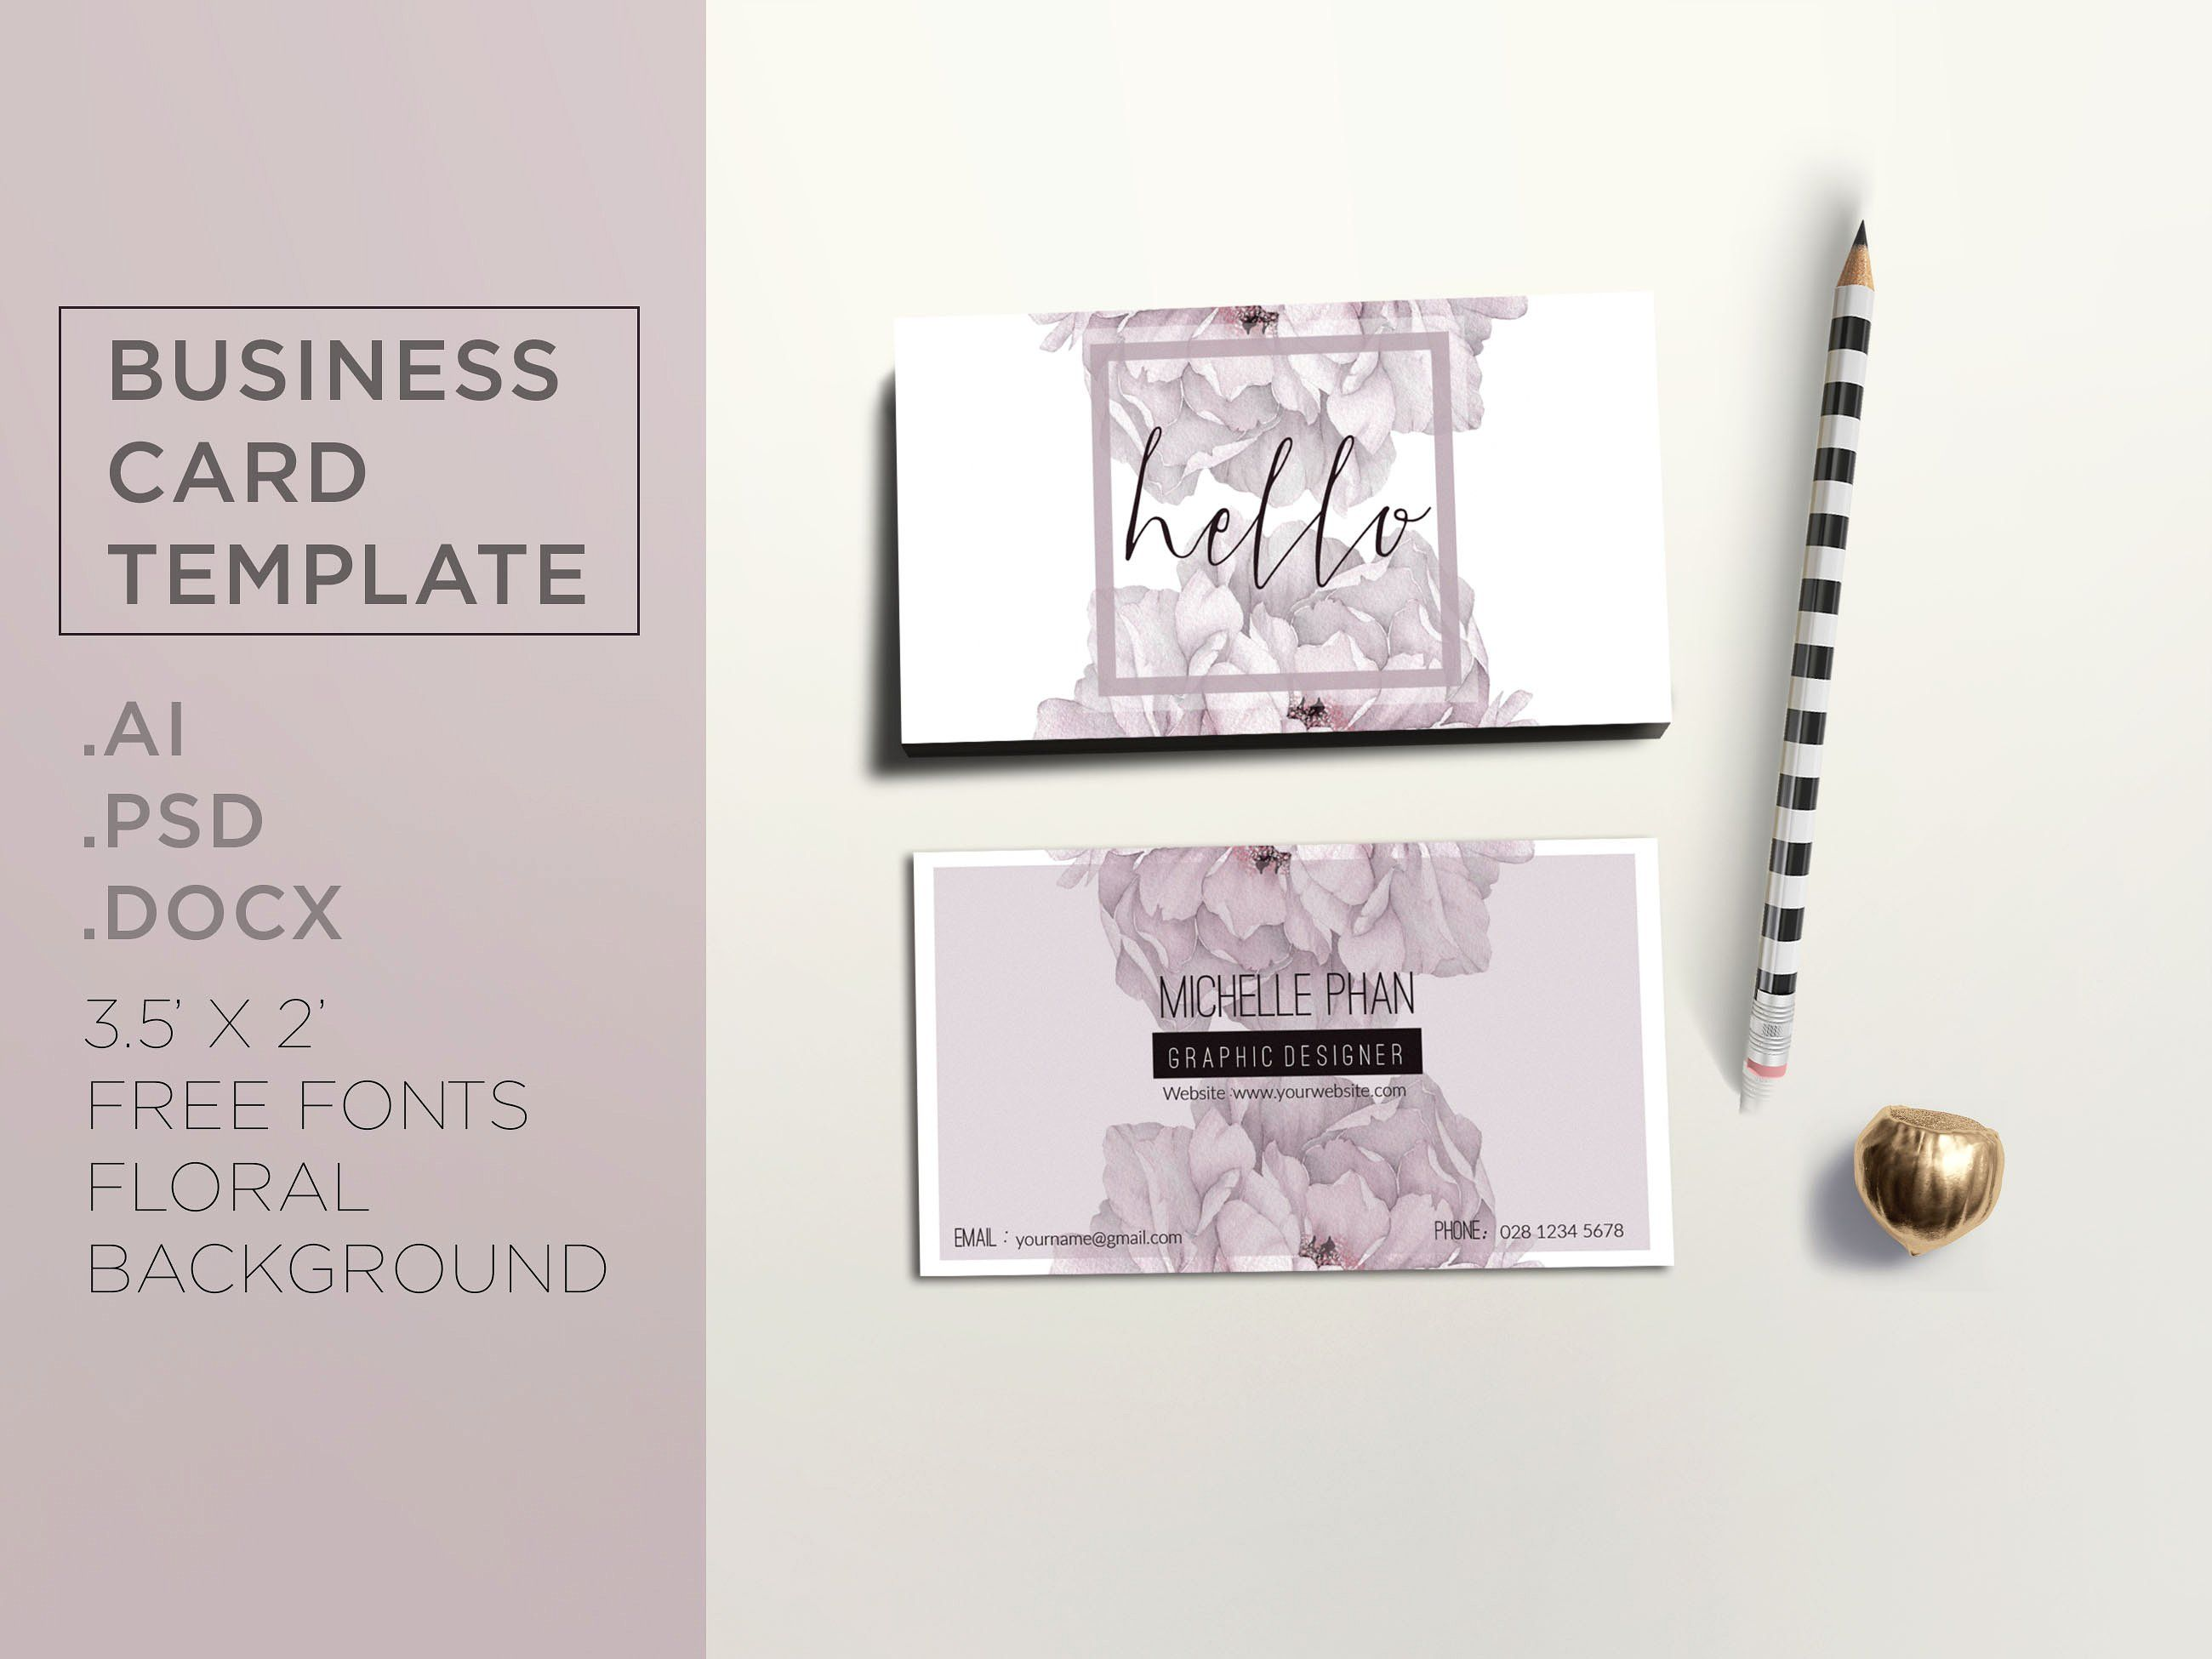 Floral business card template | Card templates, Business cards and ...